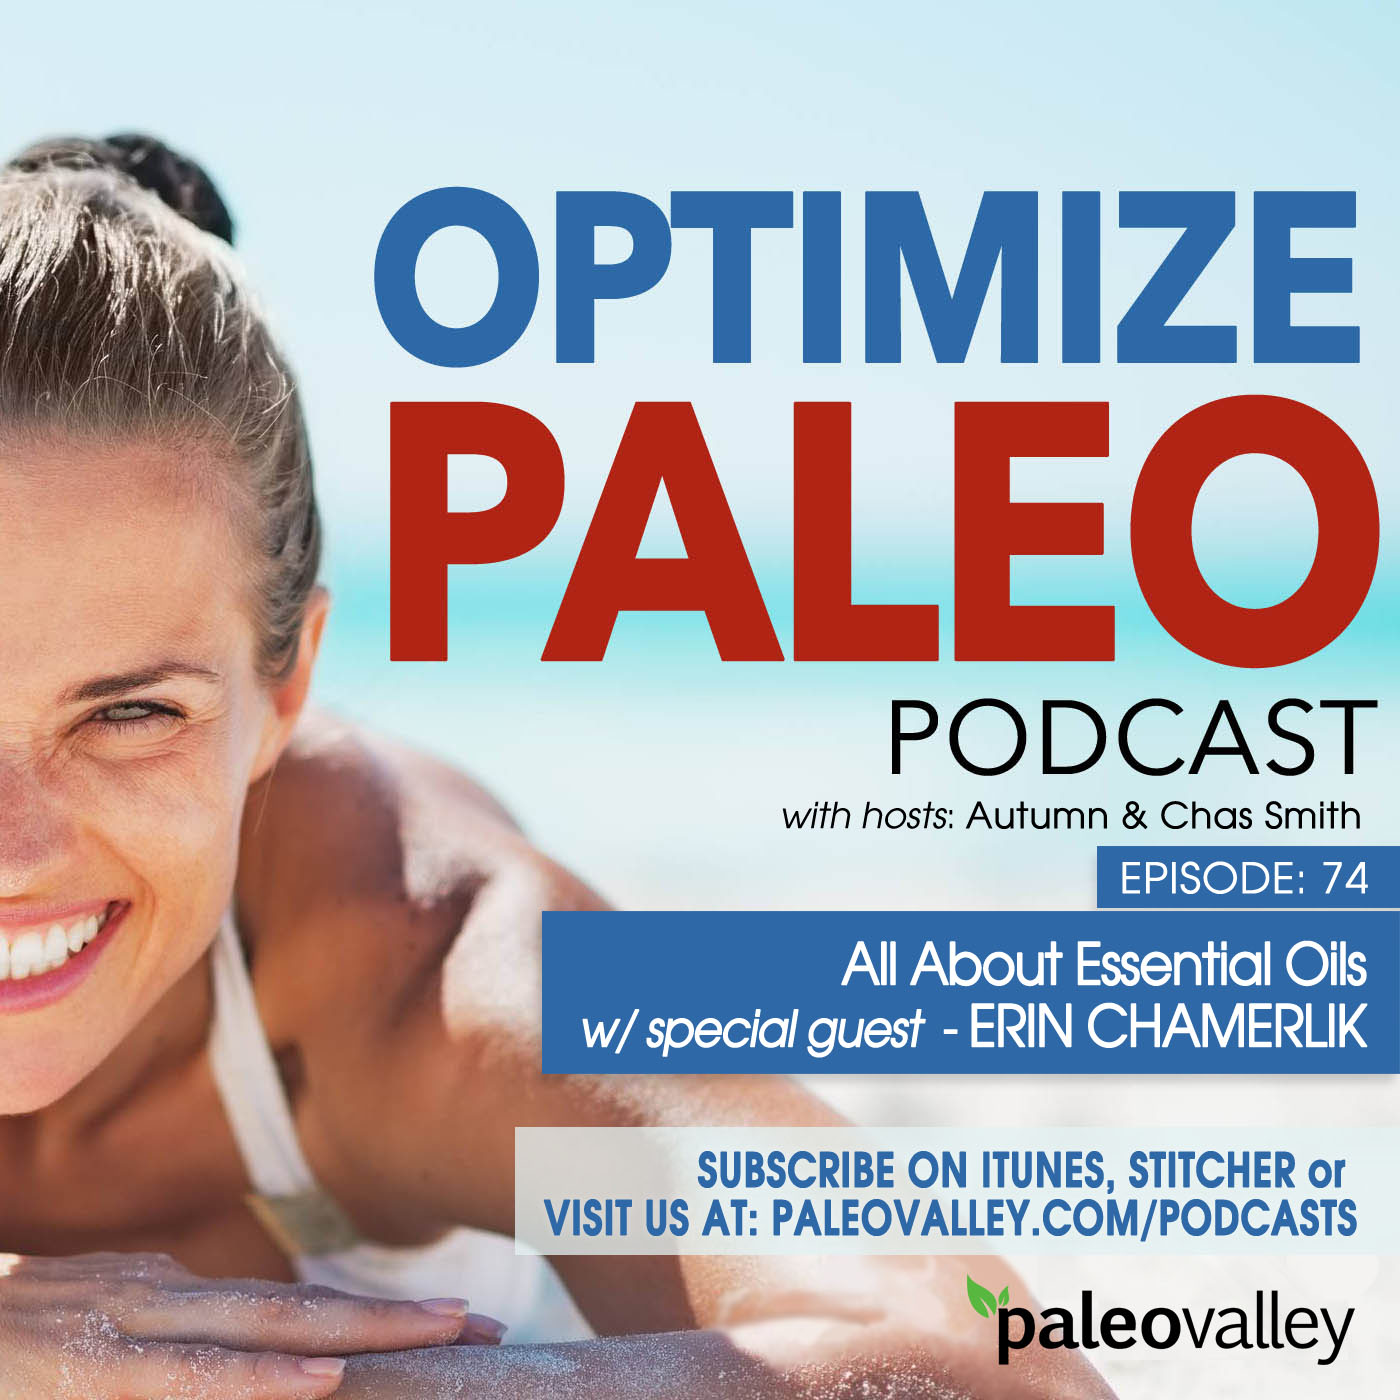 optimize-paleo-podcast-image-Insta-EP74-Erin_Chamerik